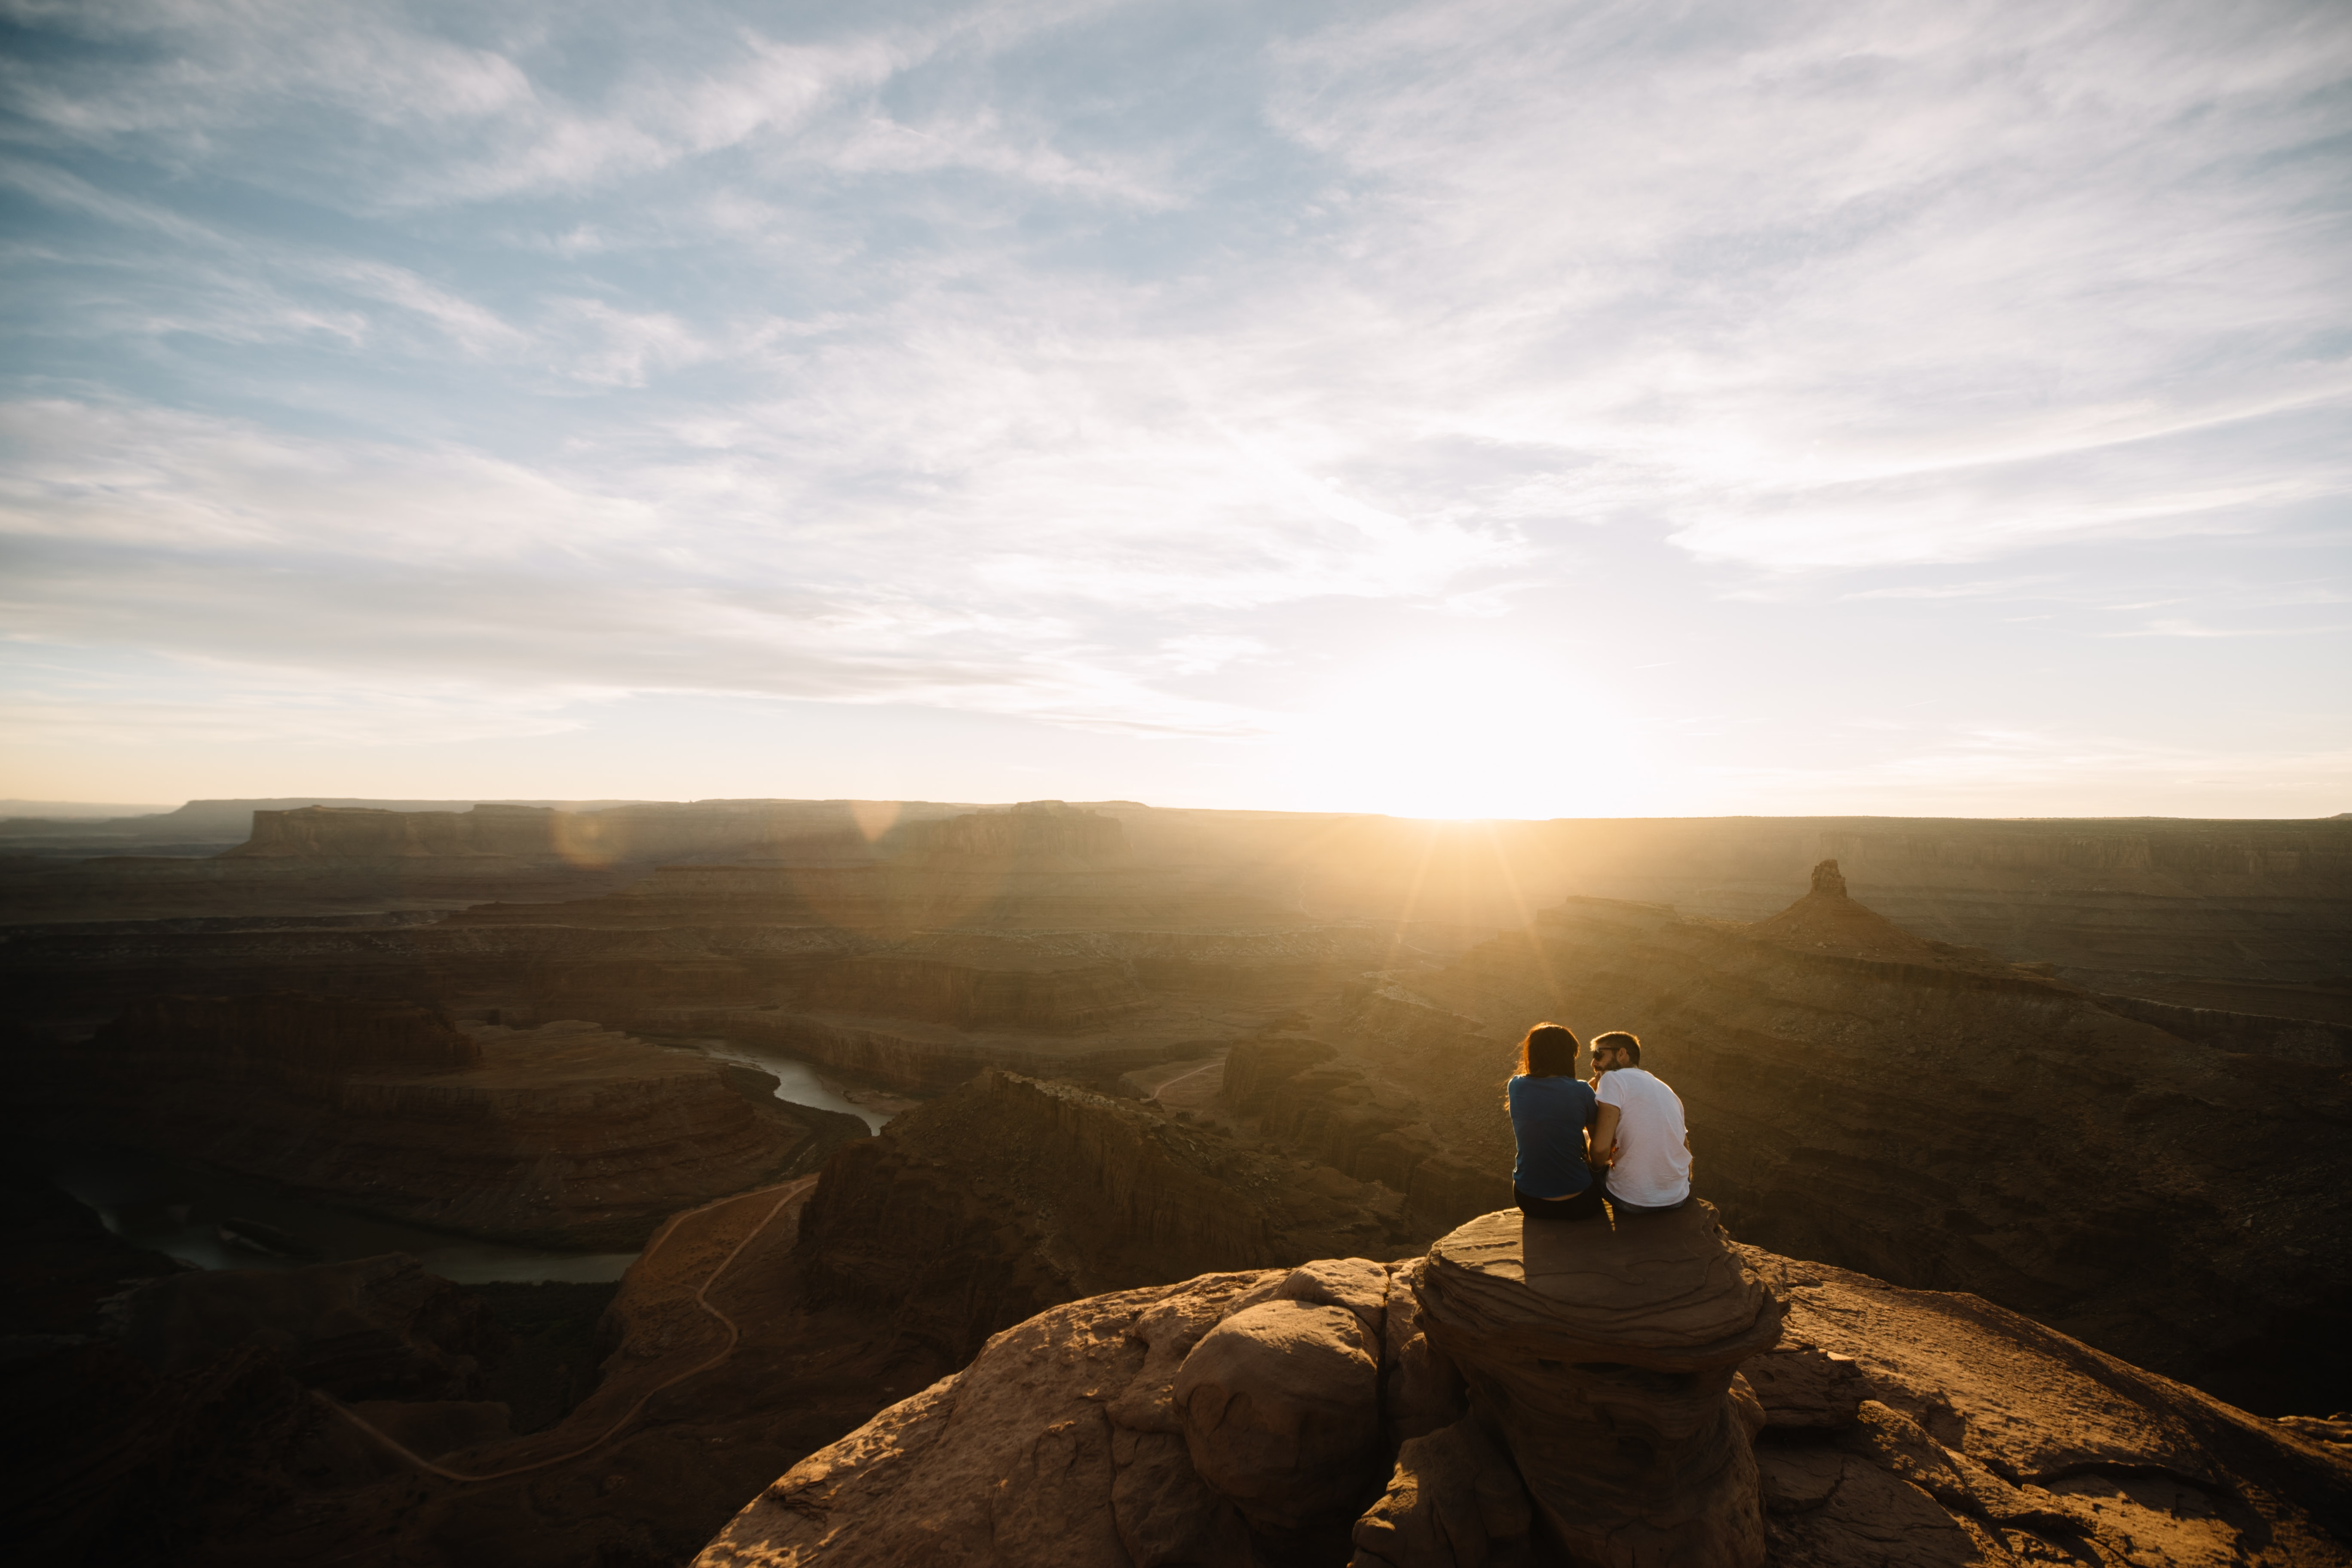 two people sitting on mountain cliff under cloudy sky during golden hour